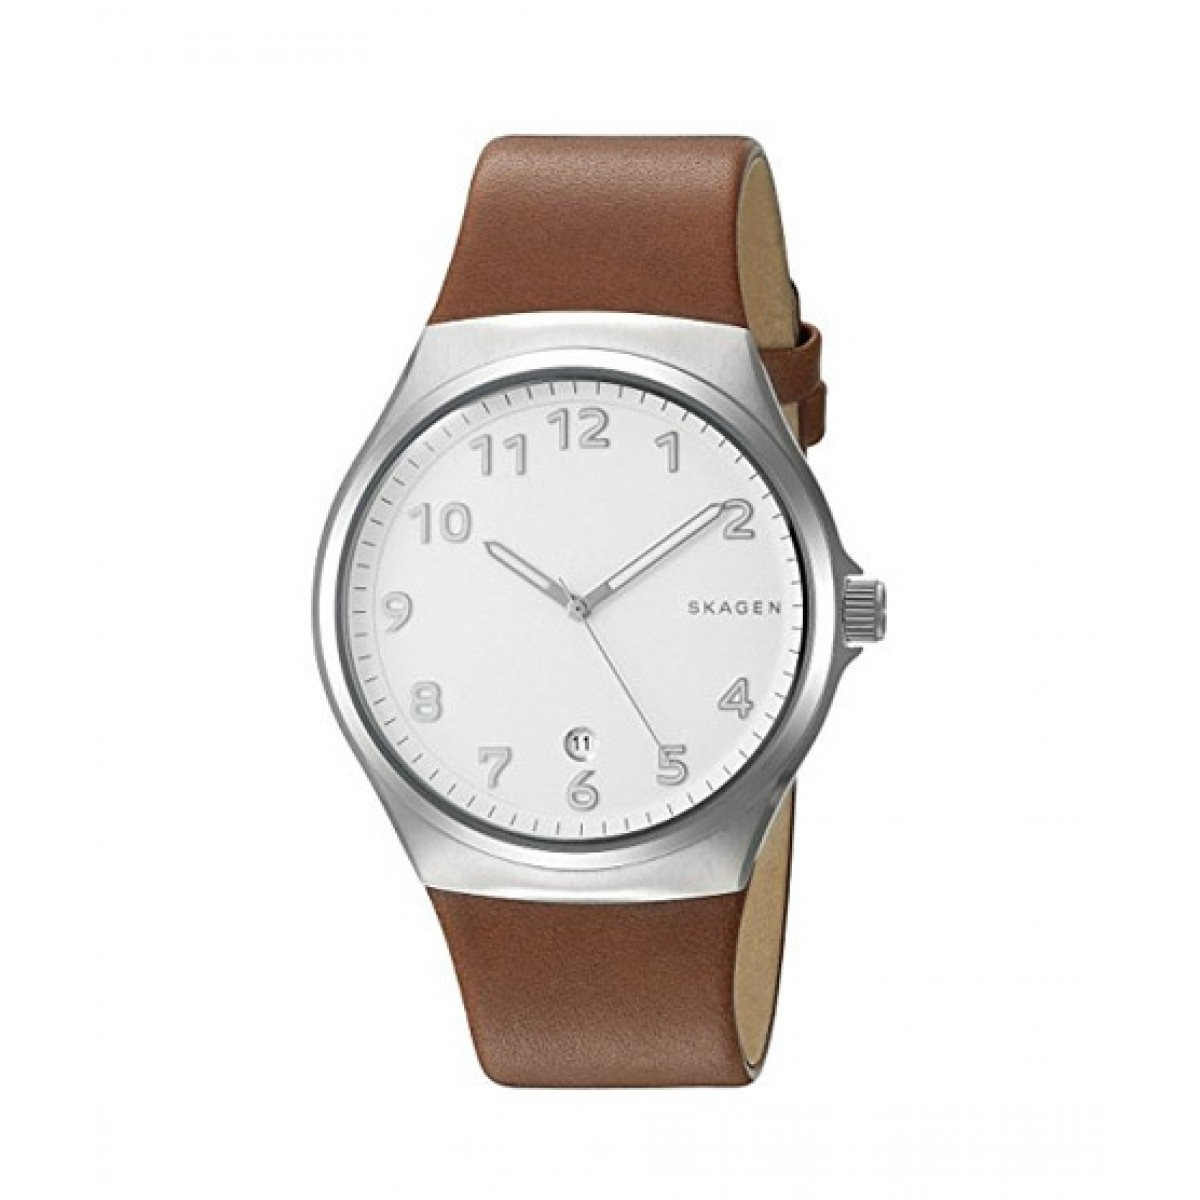 Skagen Sundby Men's Watch Brown (SKW6269)